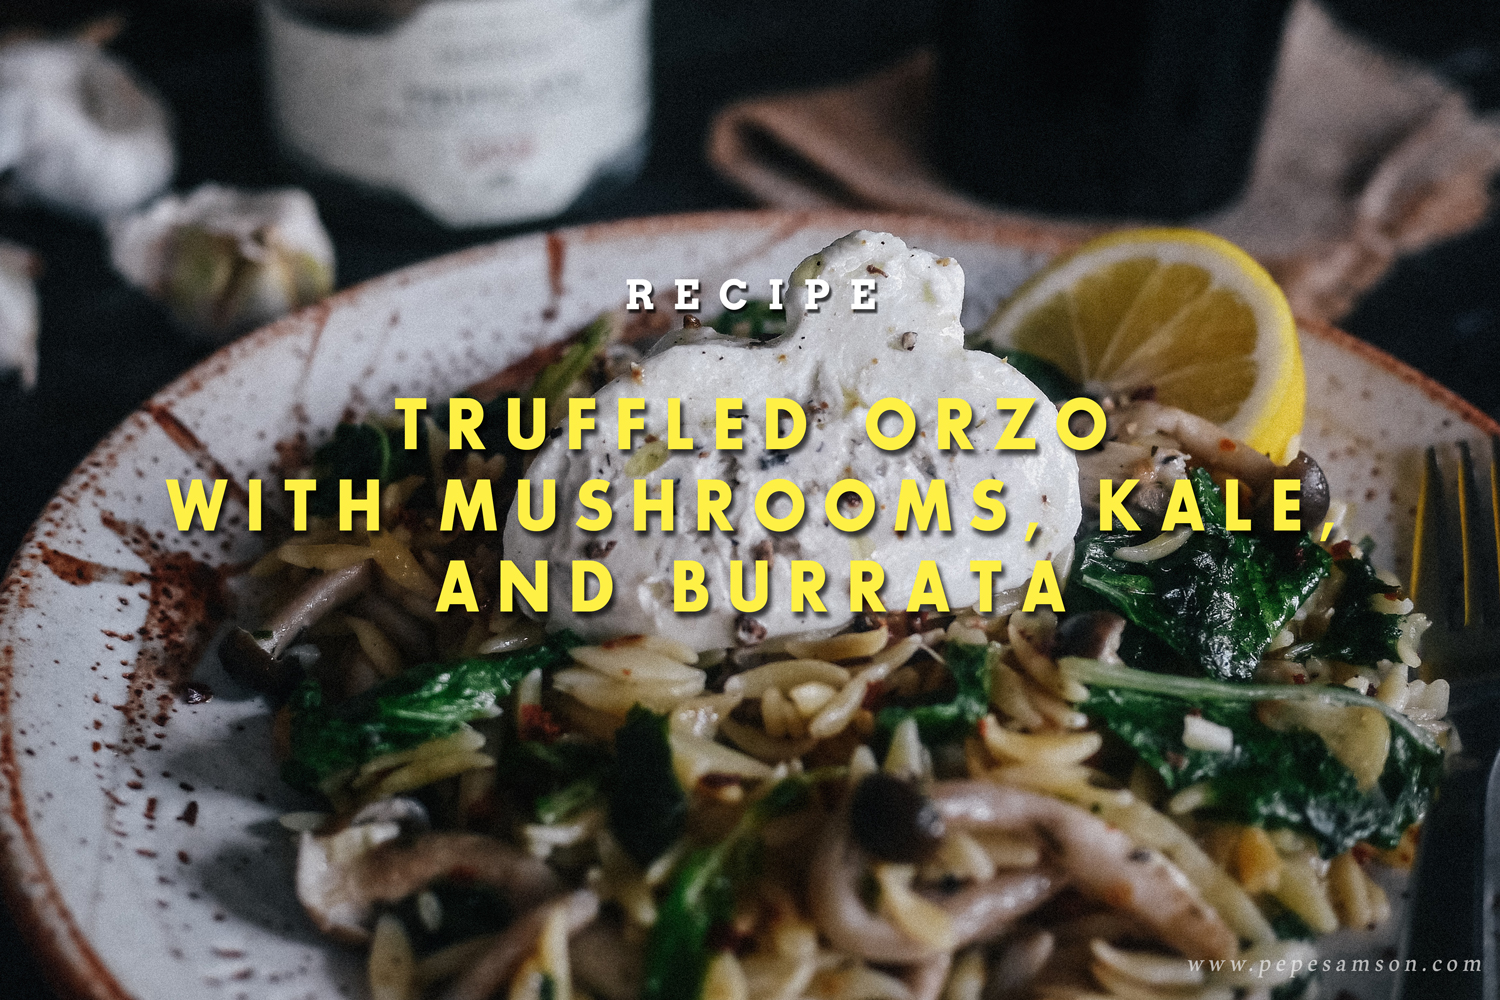 Recipe: Truffled Orzo with Mushrooms, Kale, and Burrata